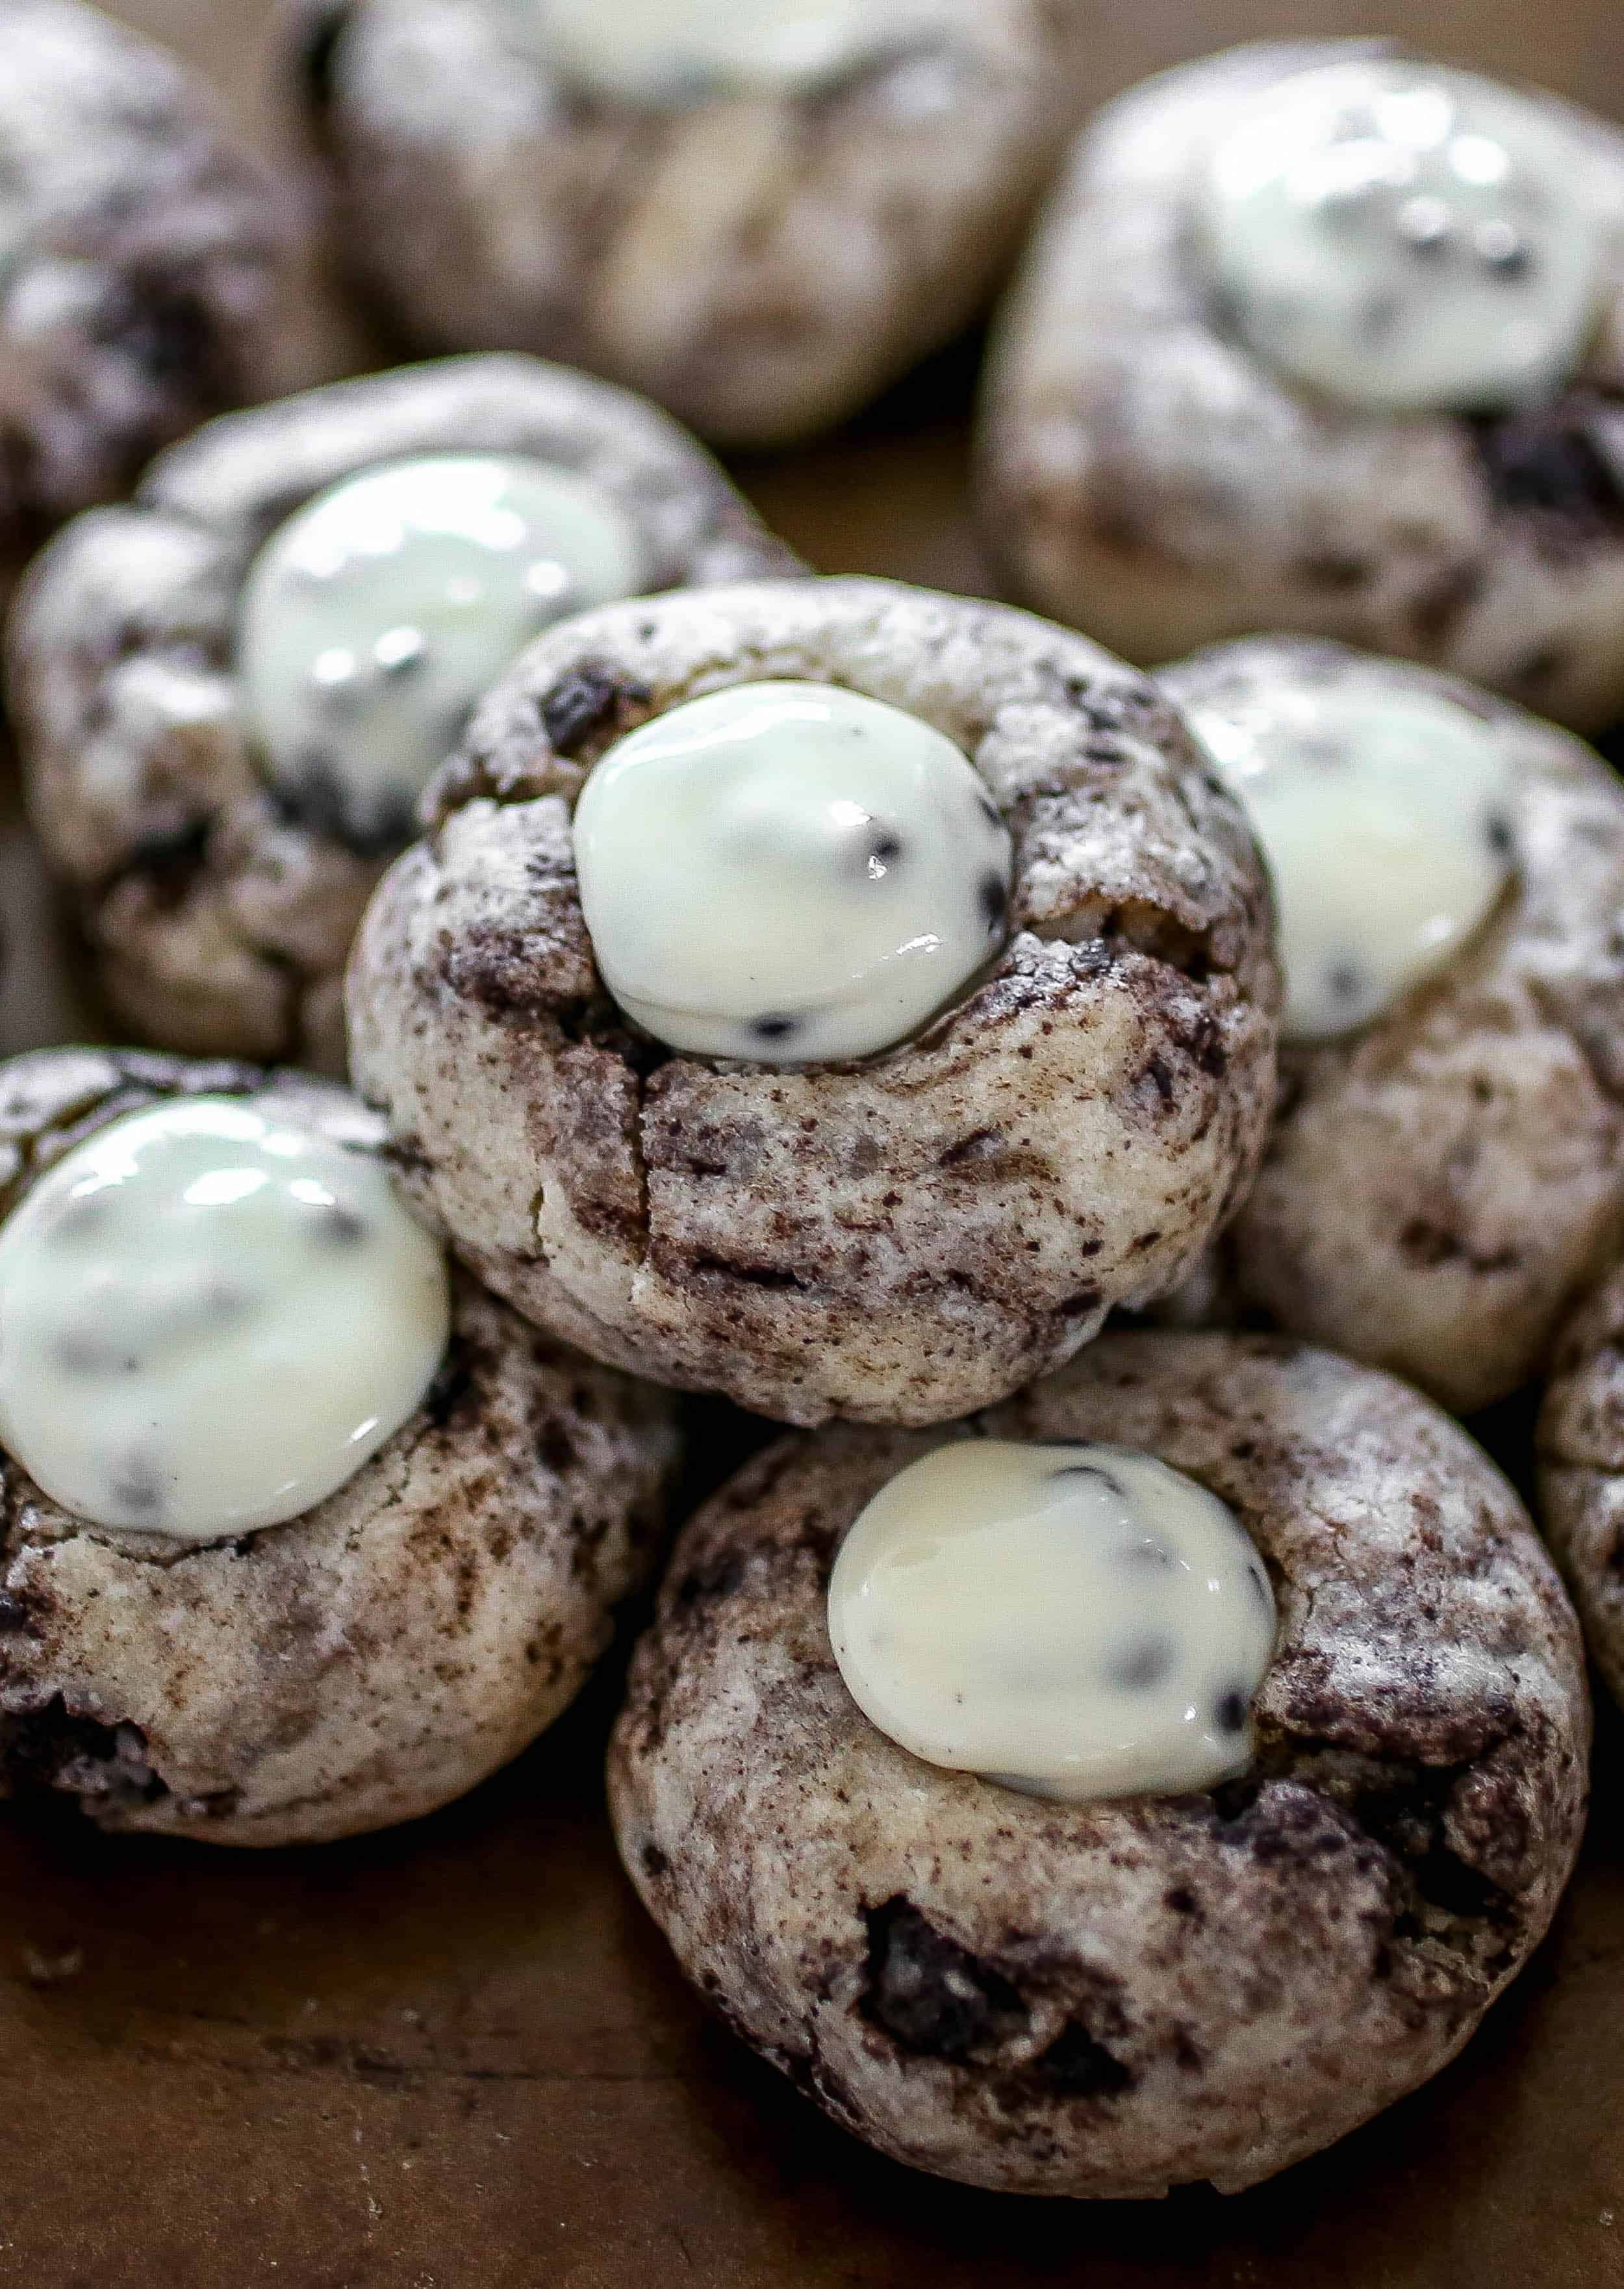 Cookies and Cream Blossoms - A new twist on the classic blossom cookie with cookies and cream flavor!